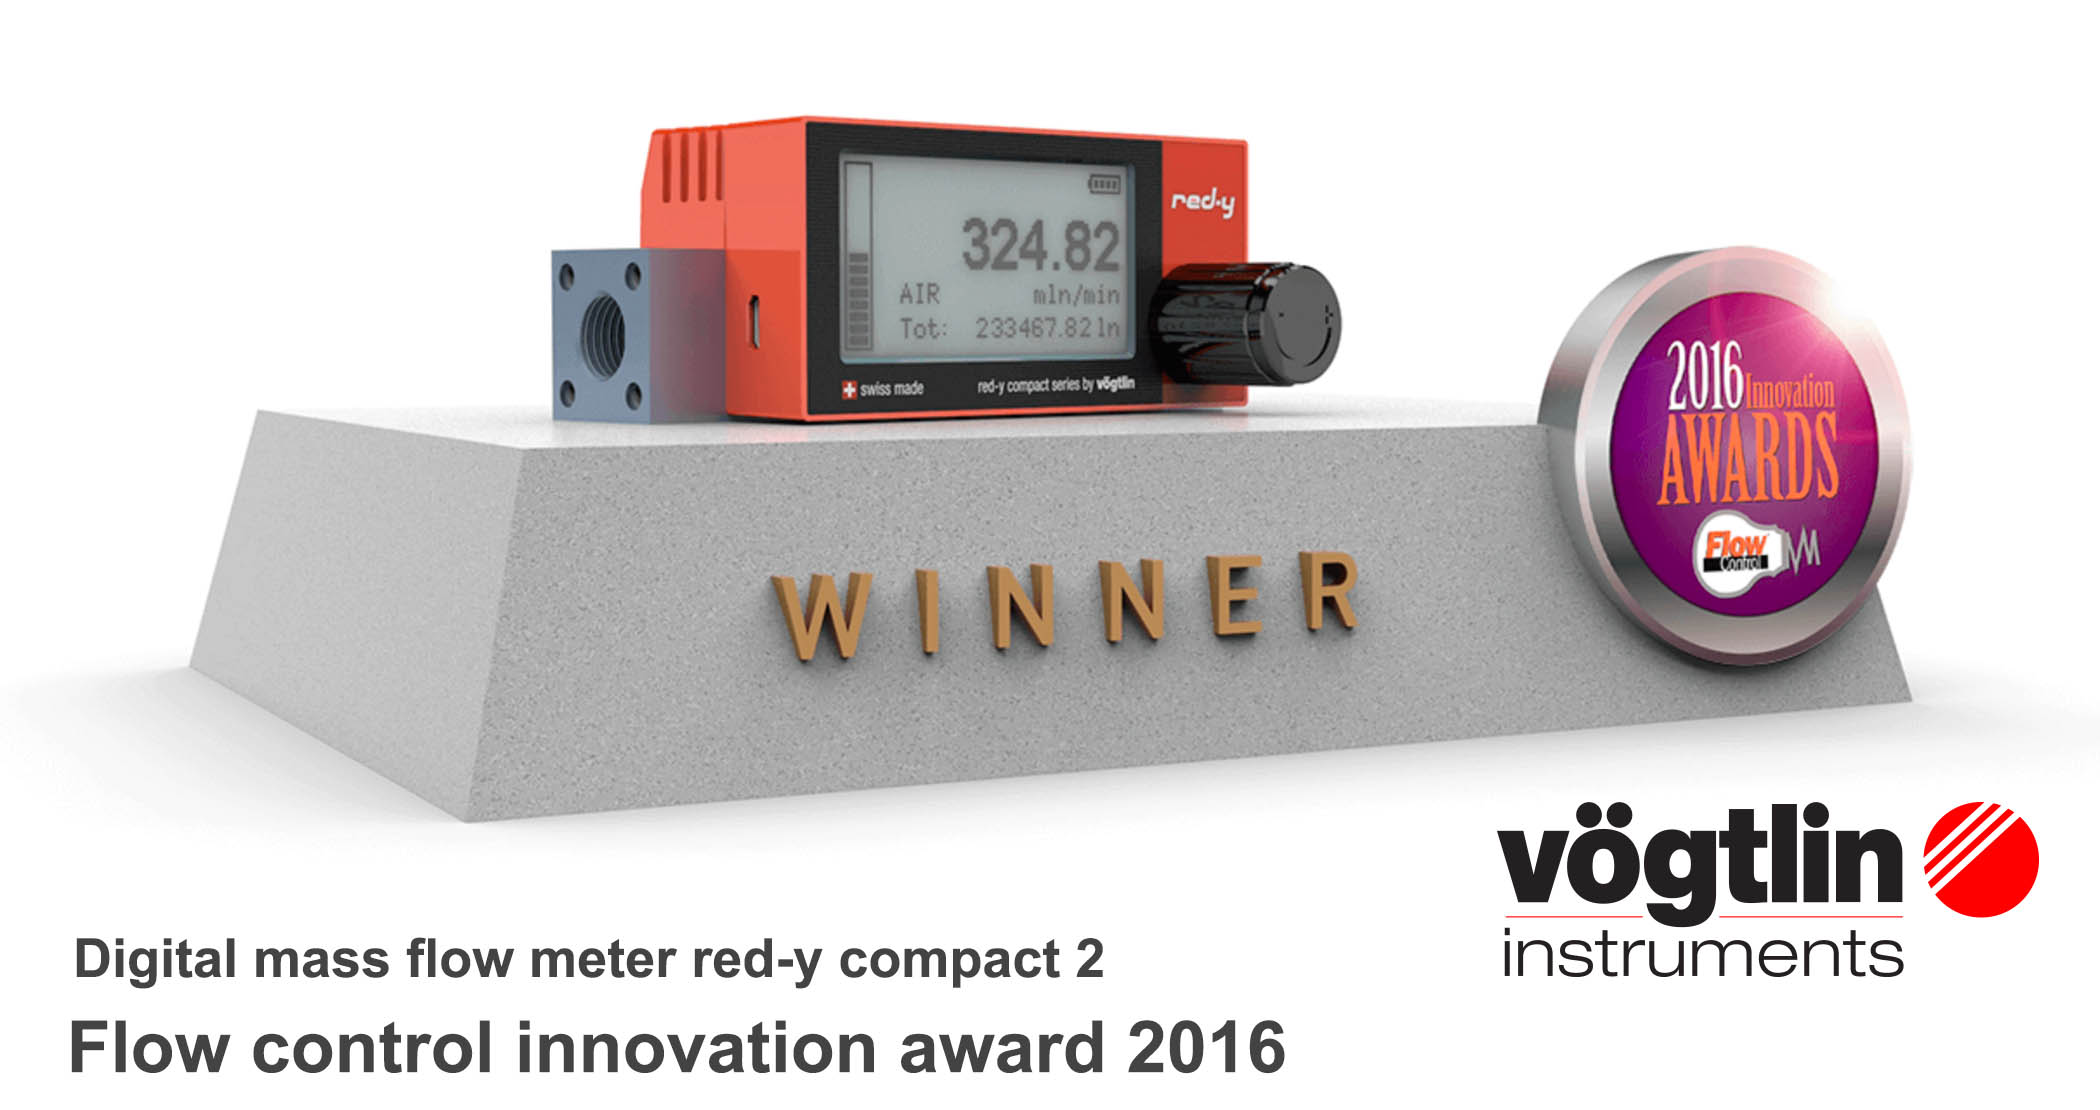 Red-y compact 2, Flow control innovation award 2016